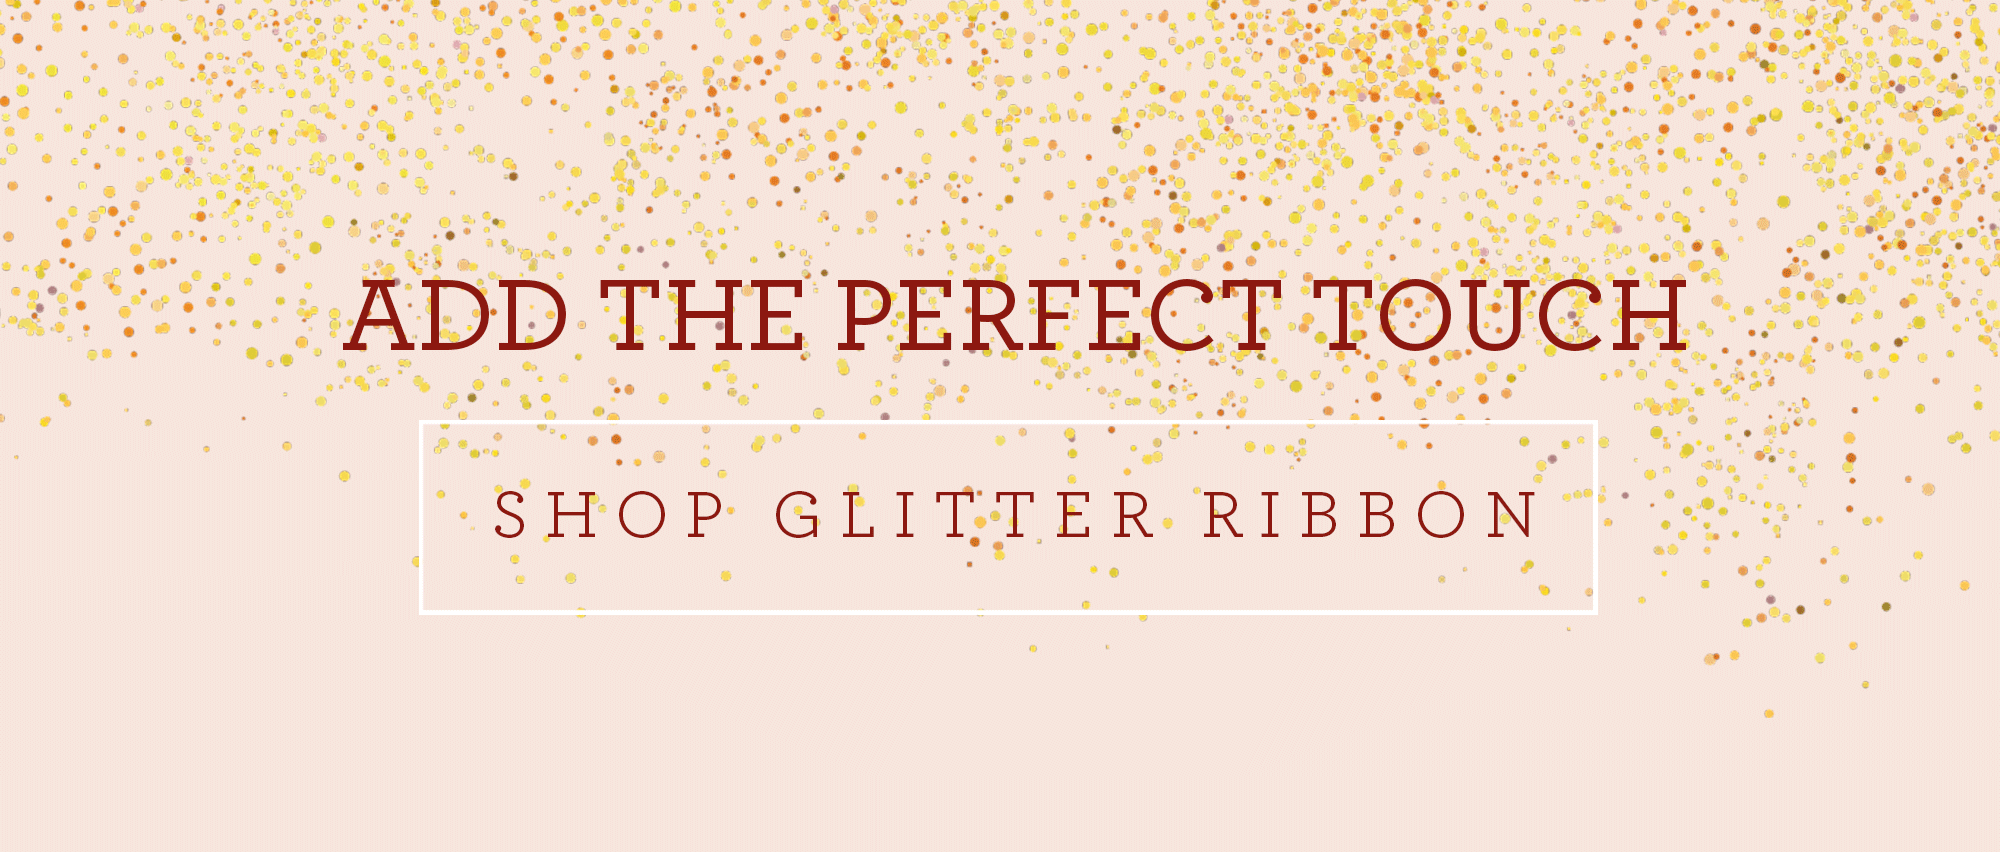 AC-SHOP-GLITTER-RIBBON-graphic-